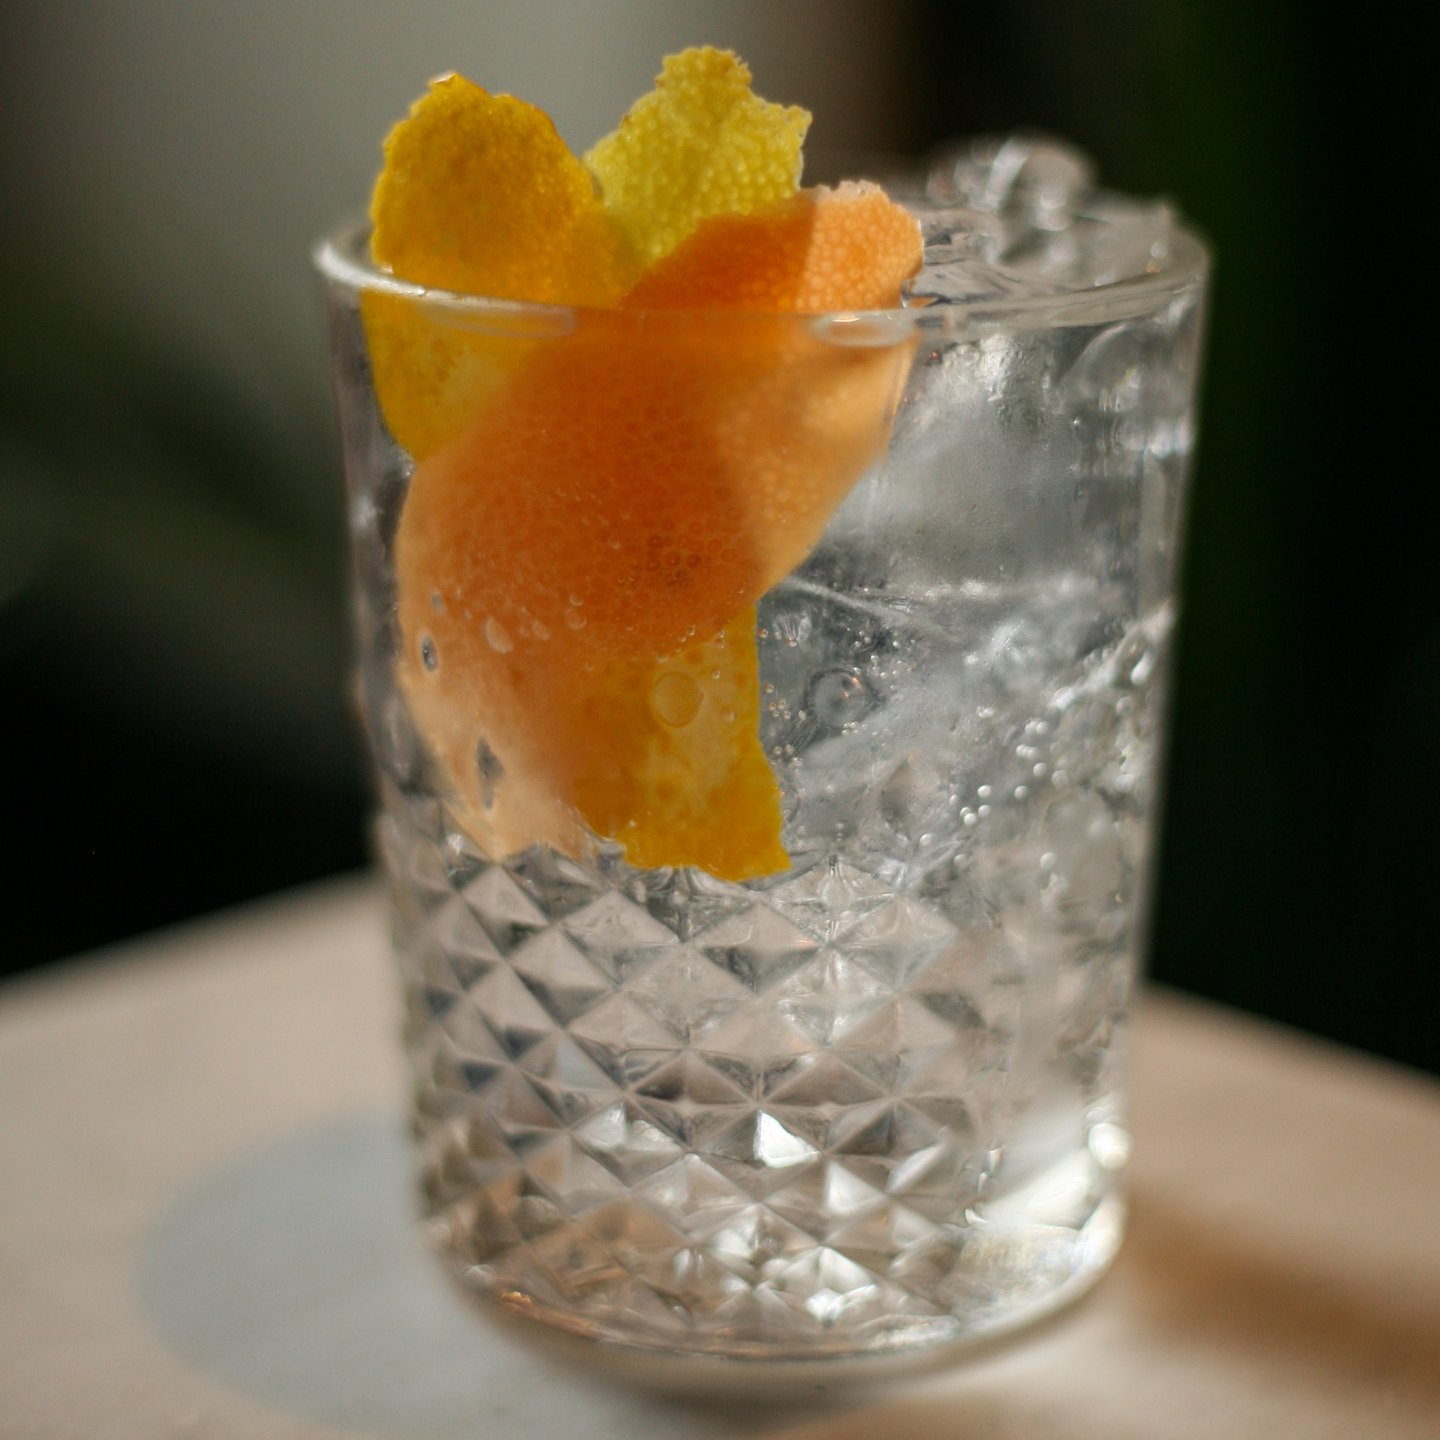 Fords Gin, Triple Citrus Gin & Tonic